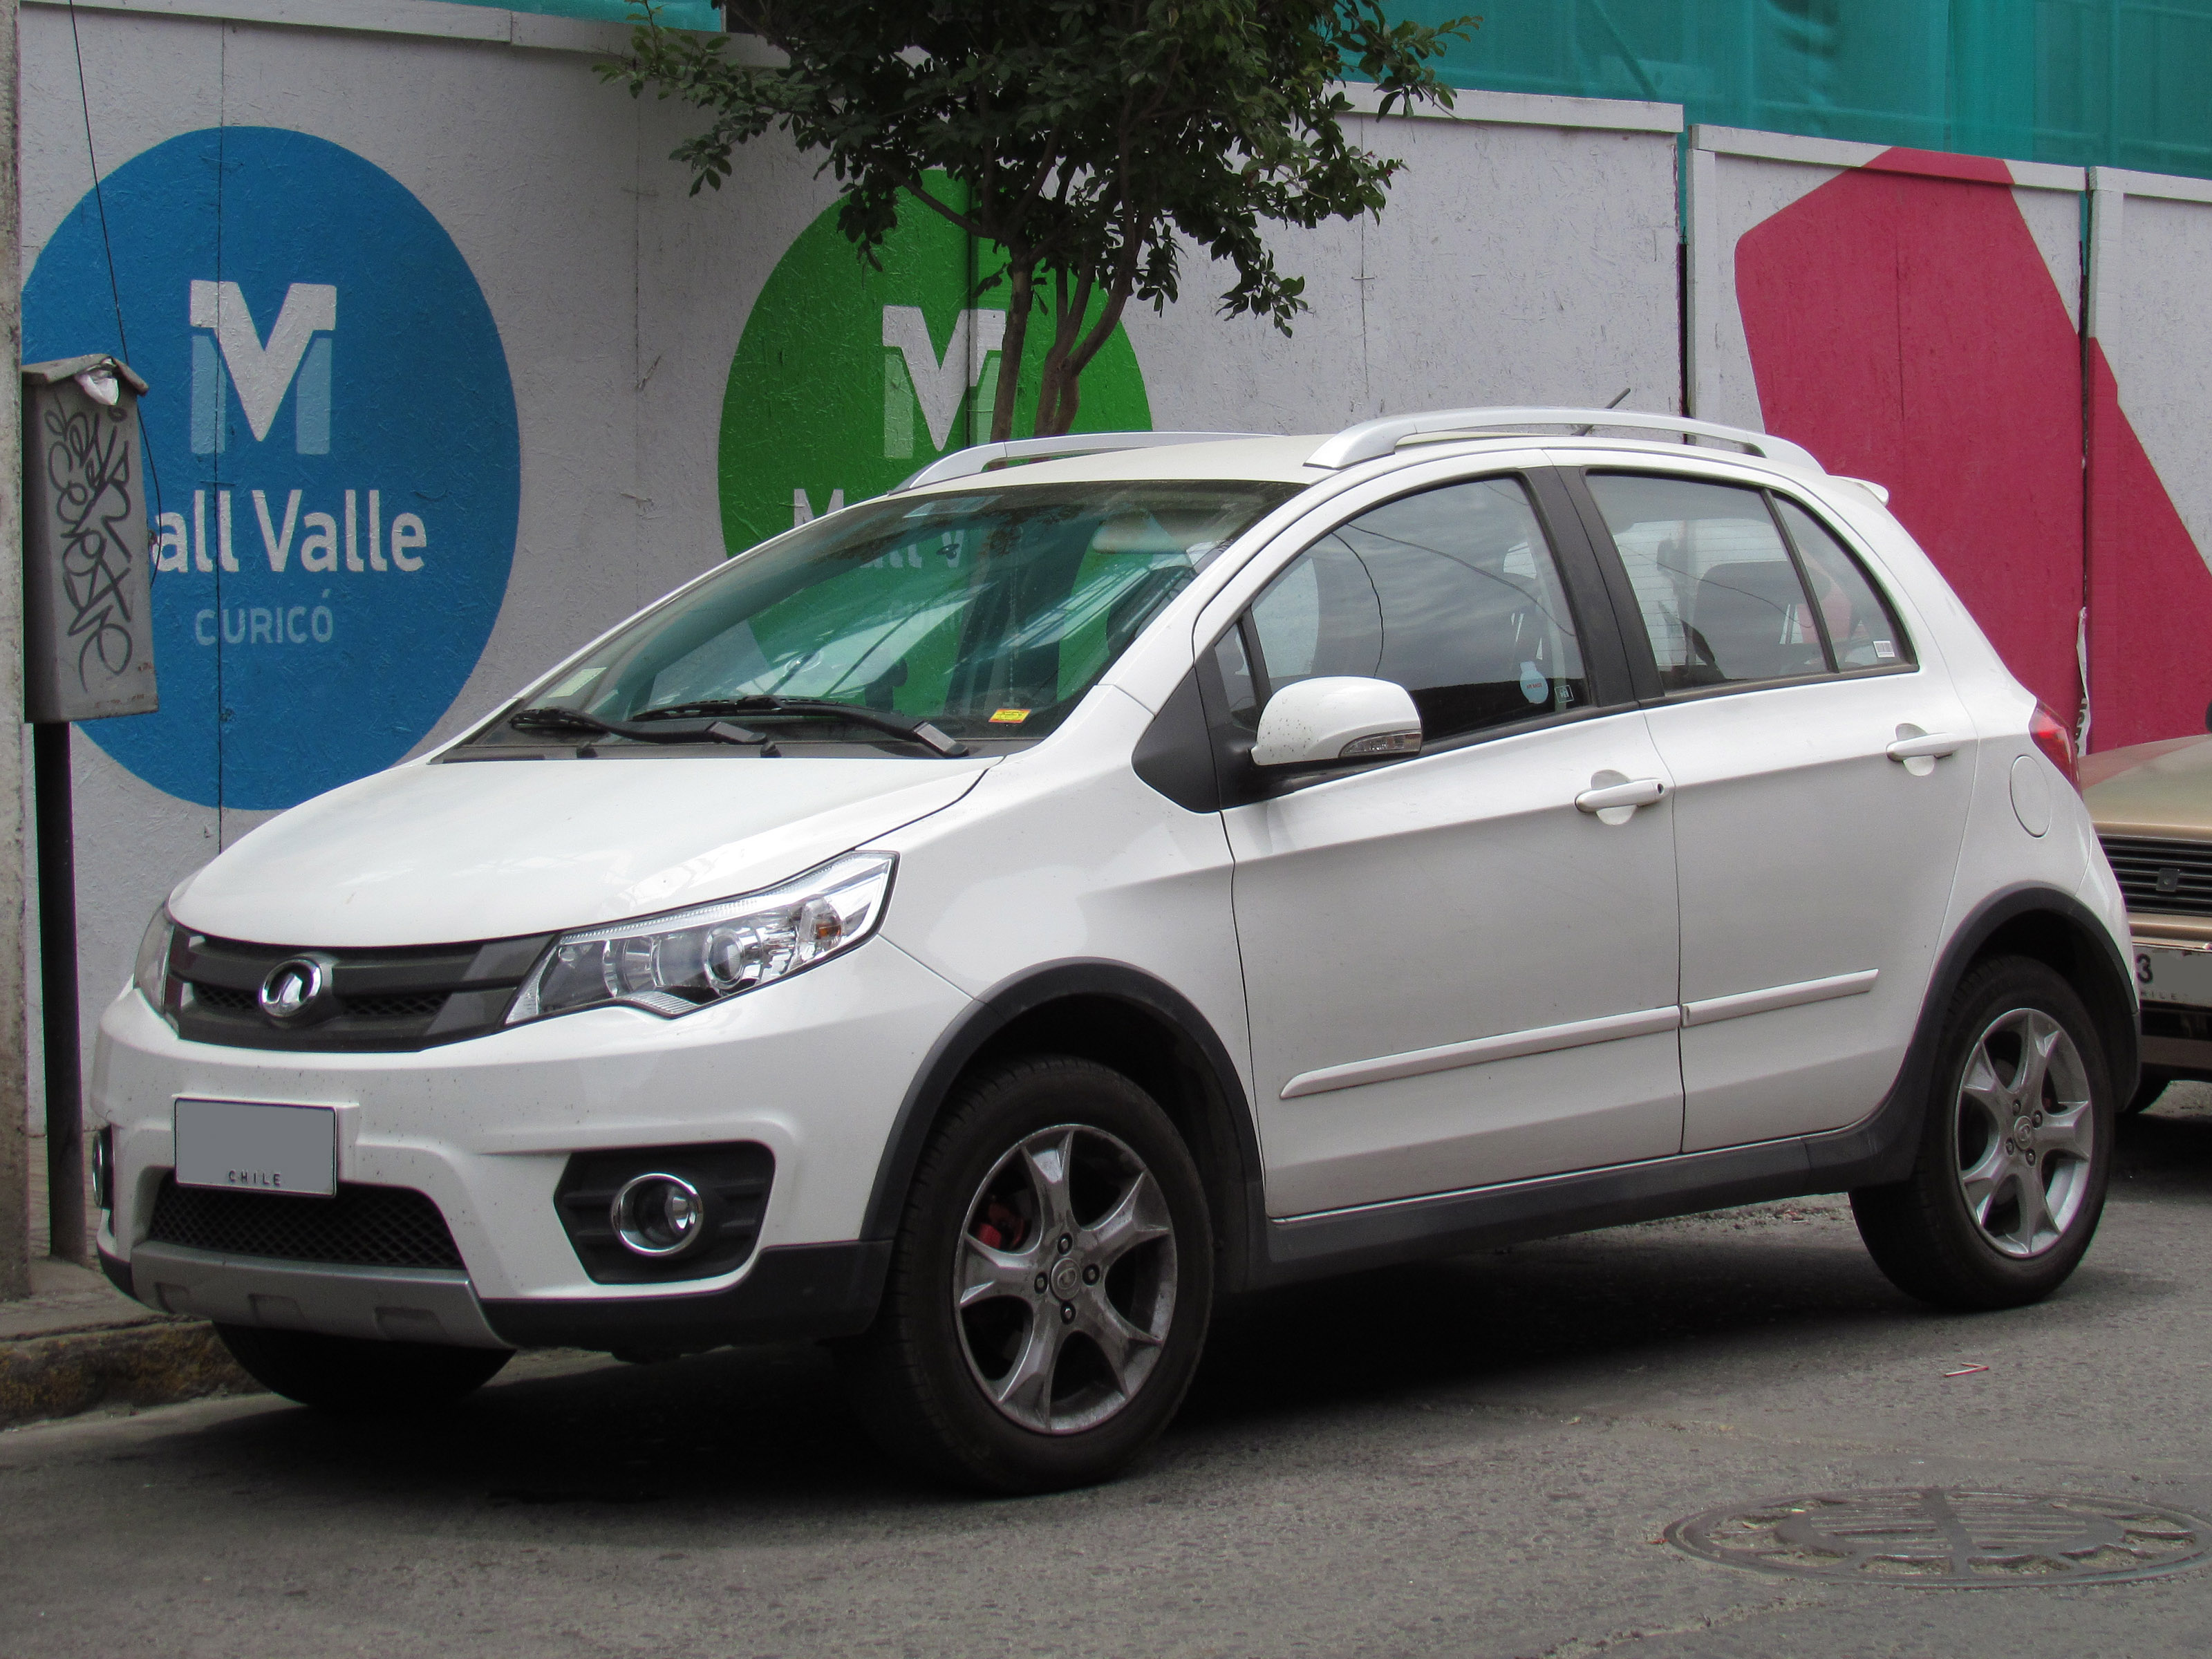 great wall voleex c20r 2014 pics #3